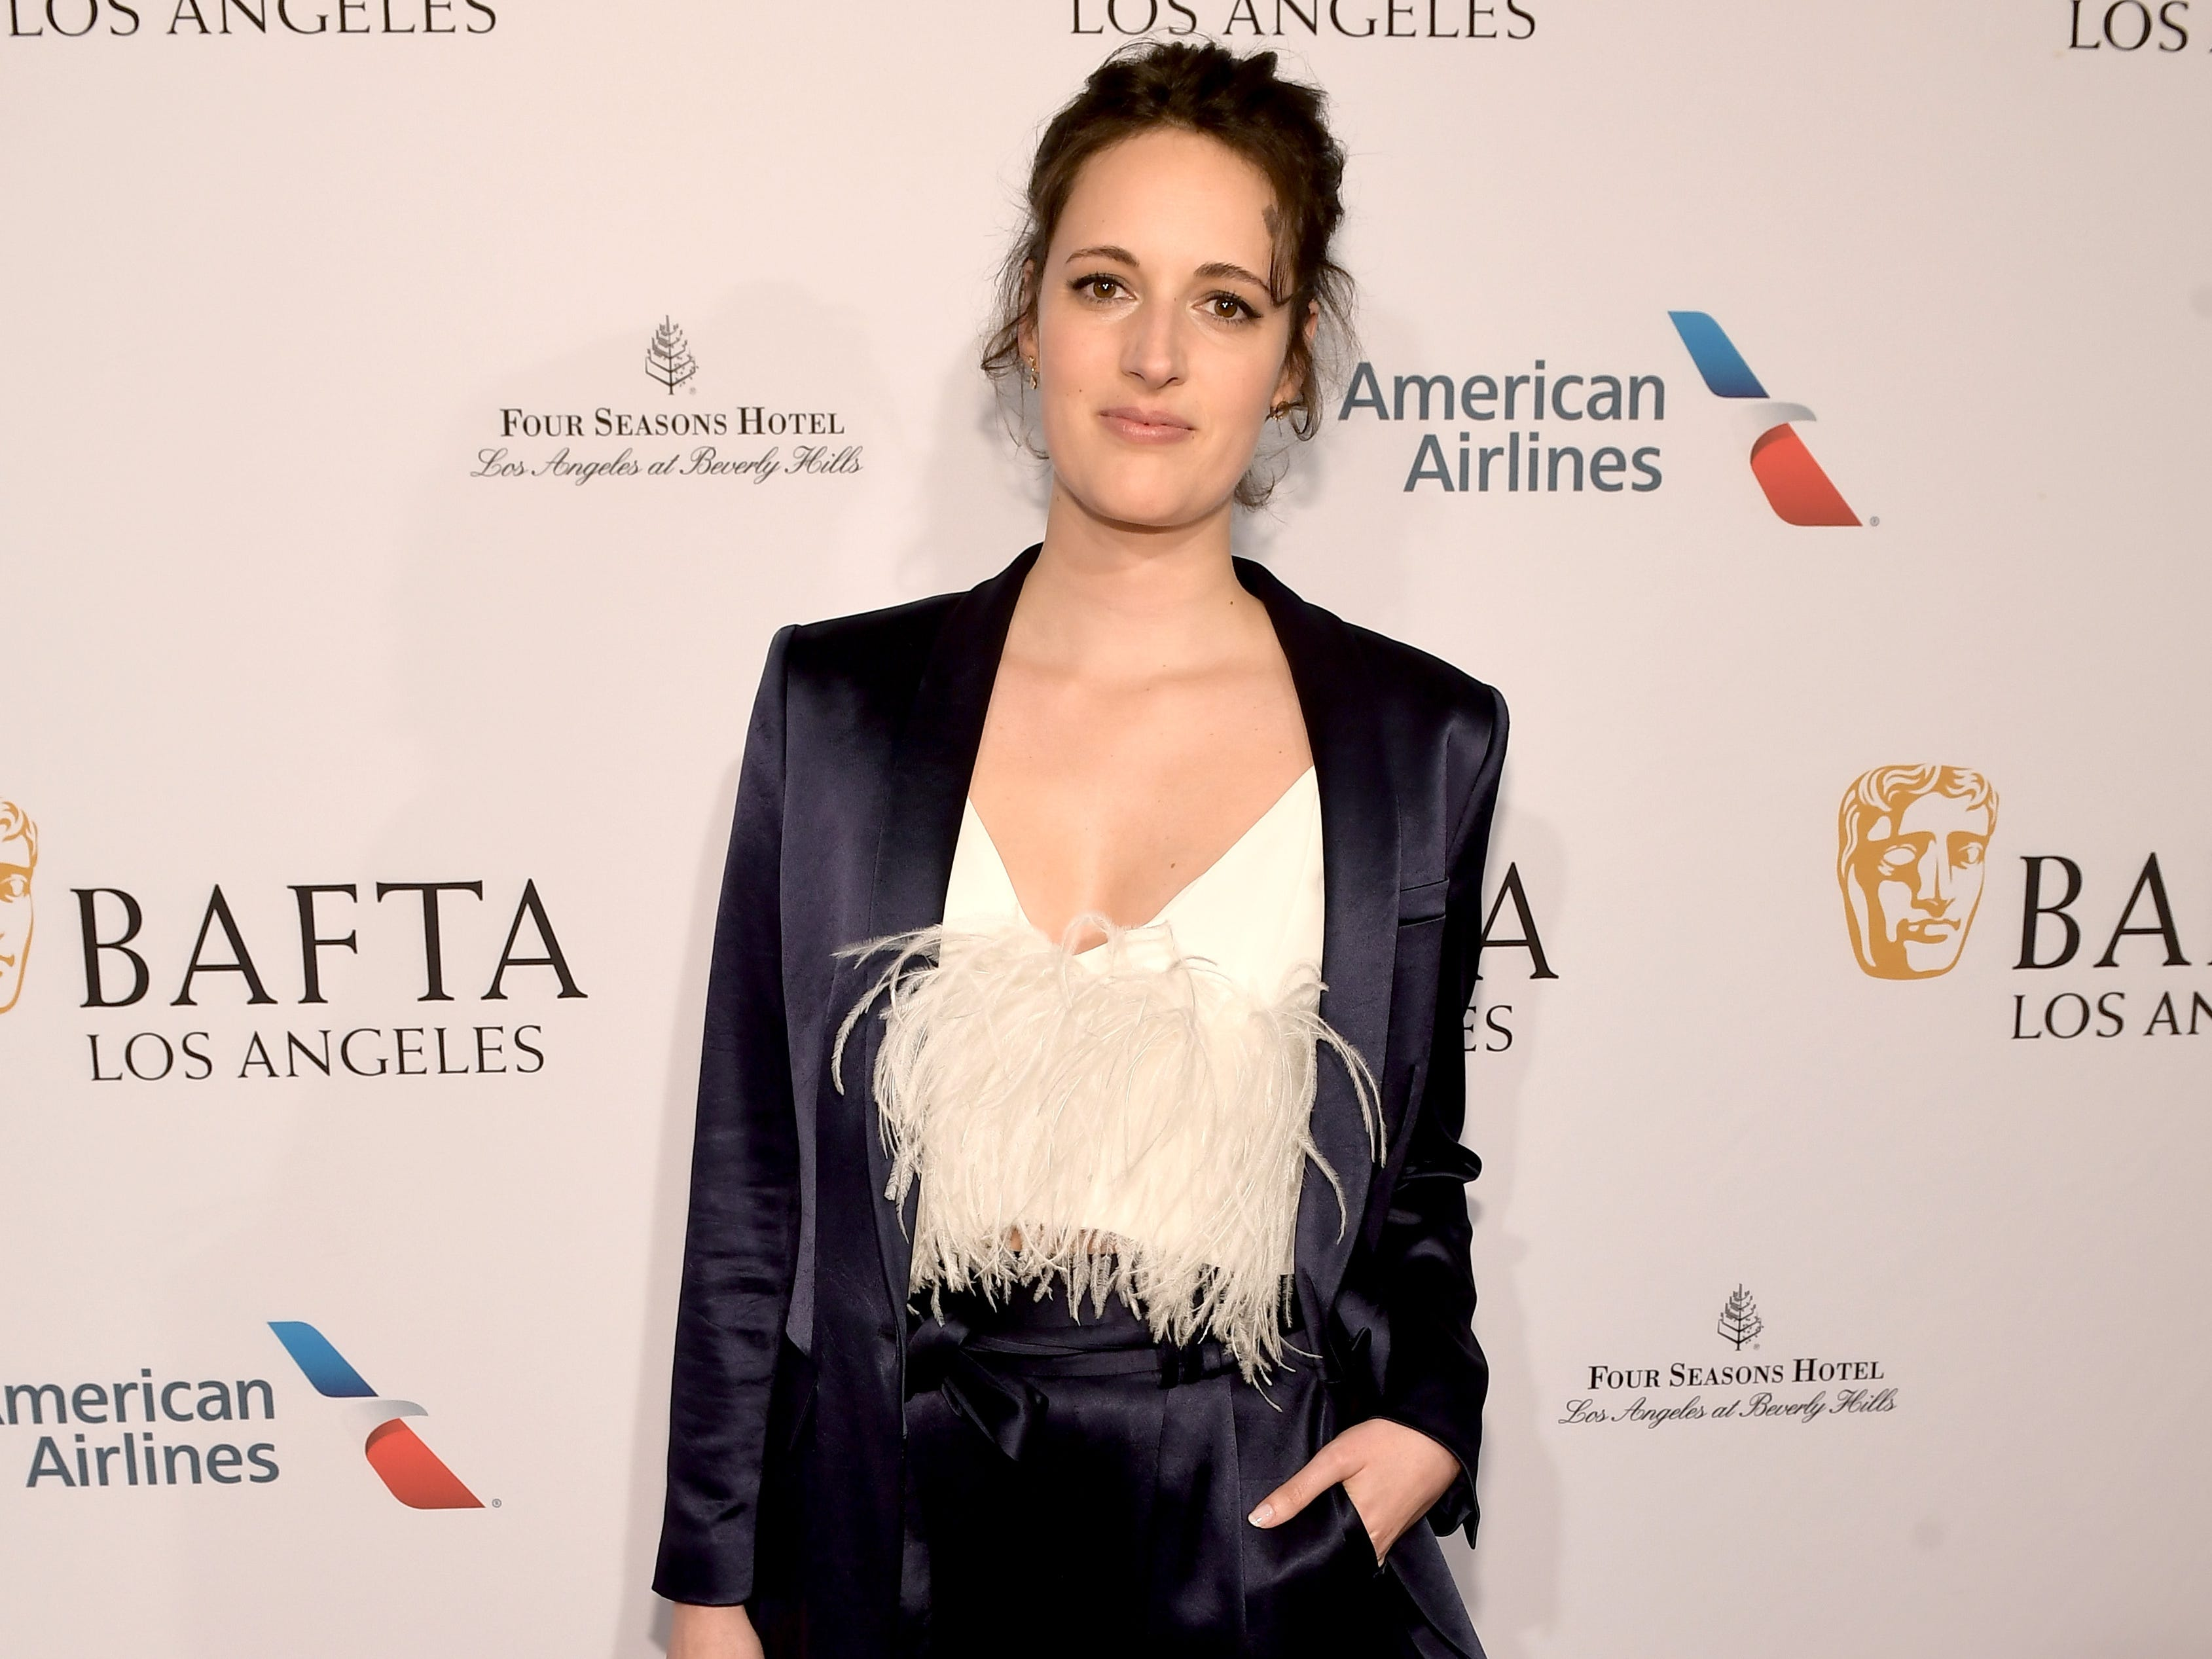 LOS ANGELES, CA - JANUARY 05:  Phoebe Waller-Bridge attends The BAFTA Los Angeles Tea Party at Four Seasons Hotel Los Angeles at Beverly Hills on January 5, 2019 in Los Angeles, California.  (Photo by Matt Winkelmeyer/Getty Images) ORG XMIT: 775256316 ORIG FILE ID: 1077926598